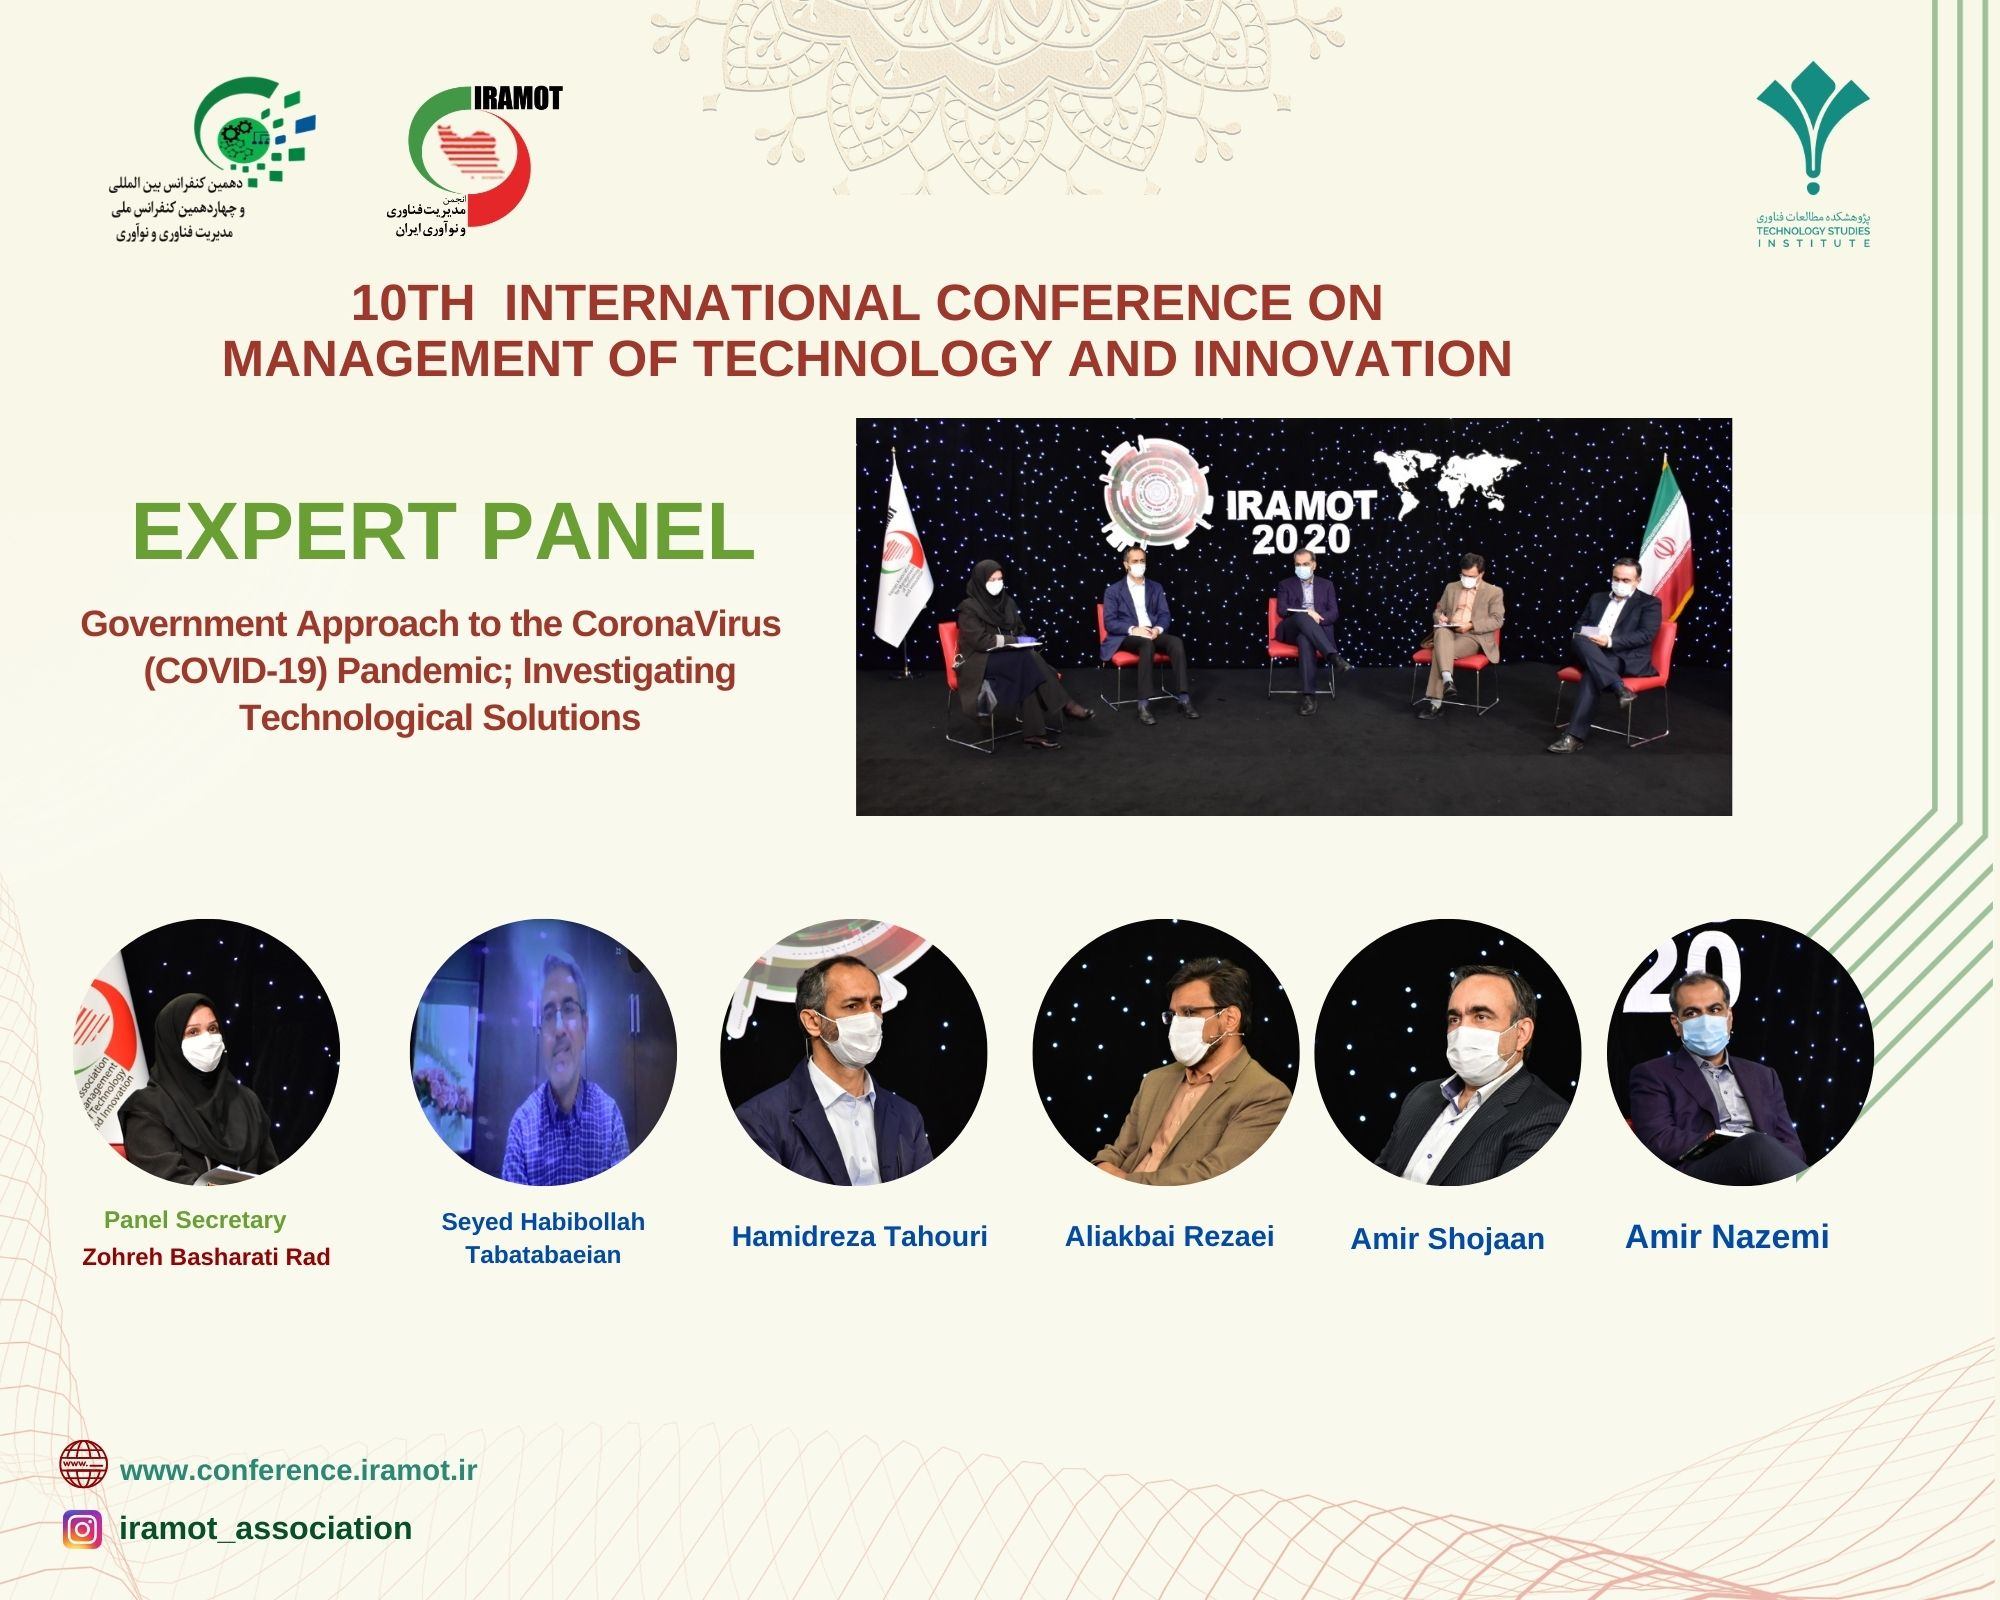 http://www.conference.iramot.ir/wp-content/uploads/2020/12/پانل-تخصصی-7.jpg